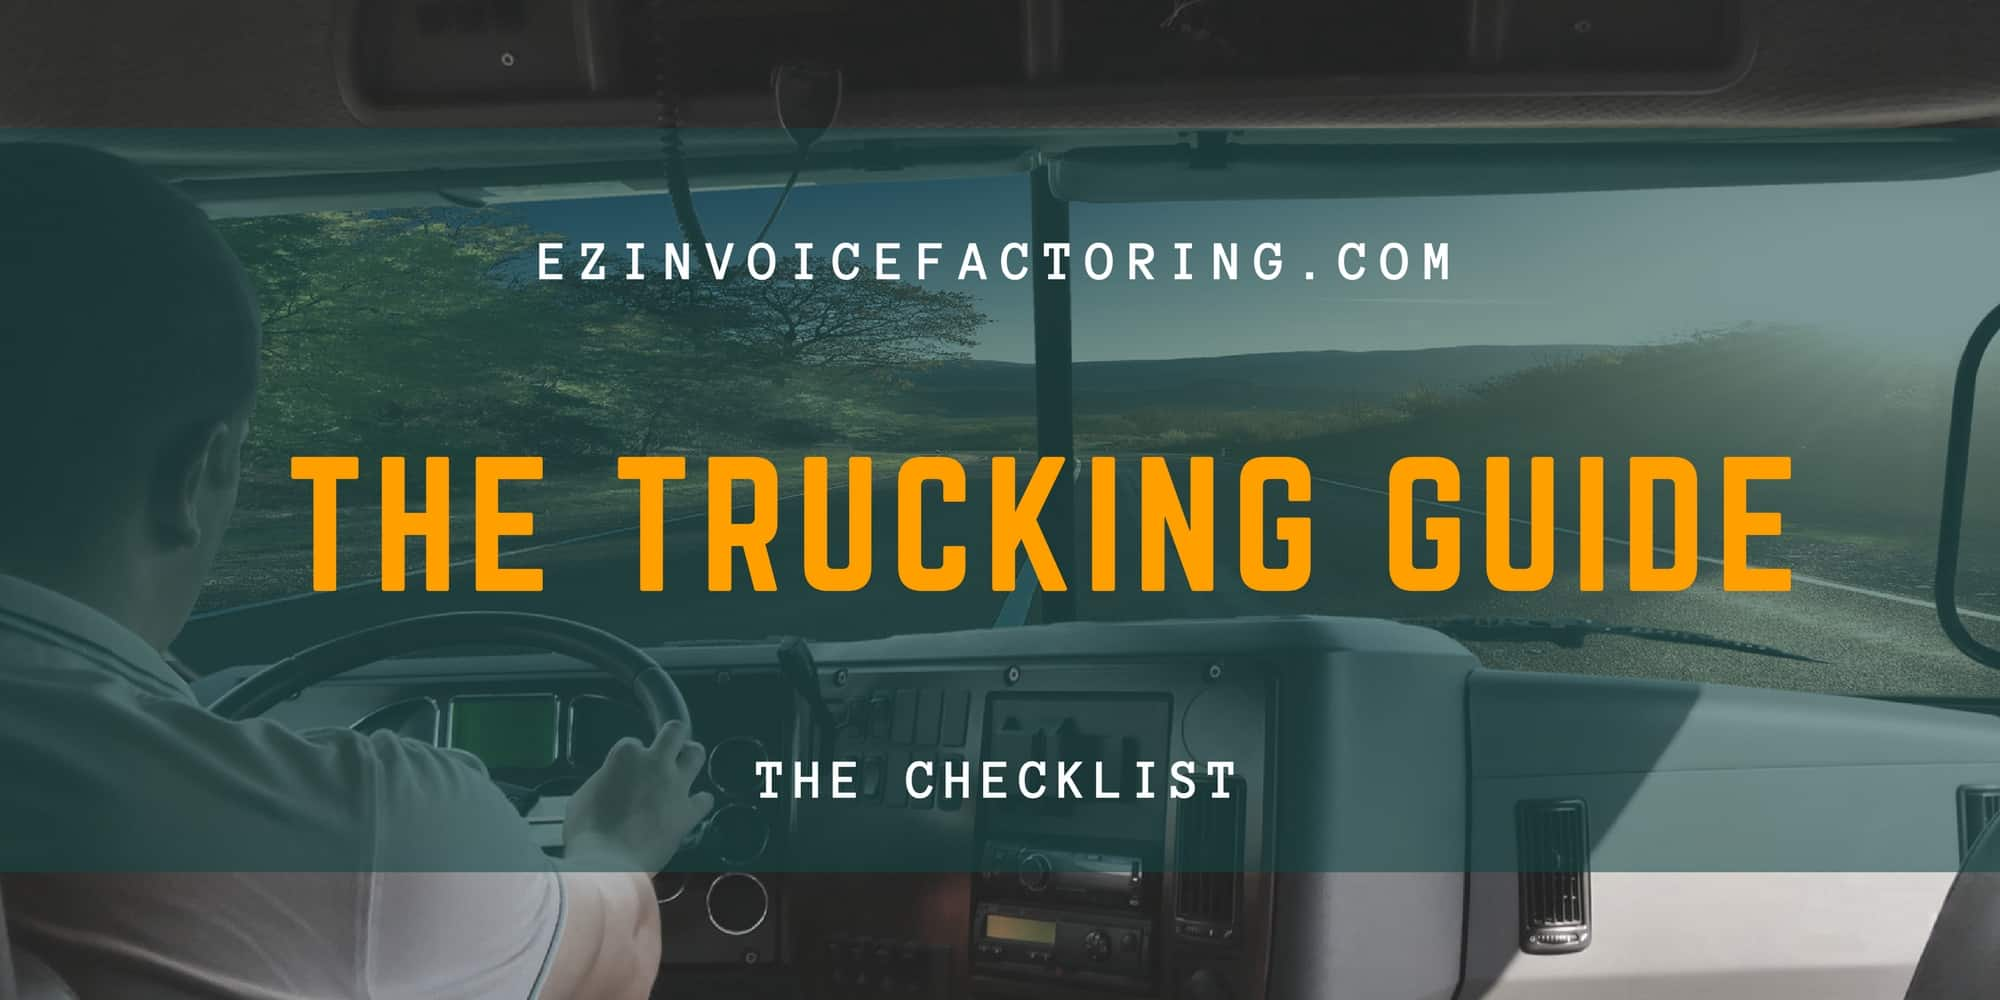 Must-Have Supplies for Every Truck Driver - EZ Invoice Factoring